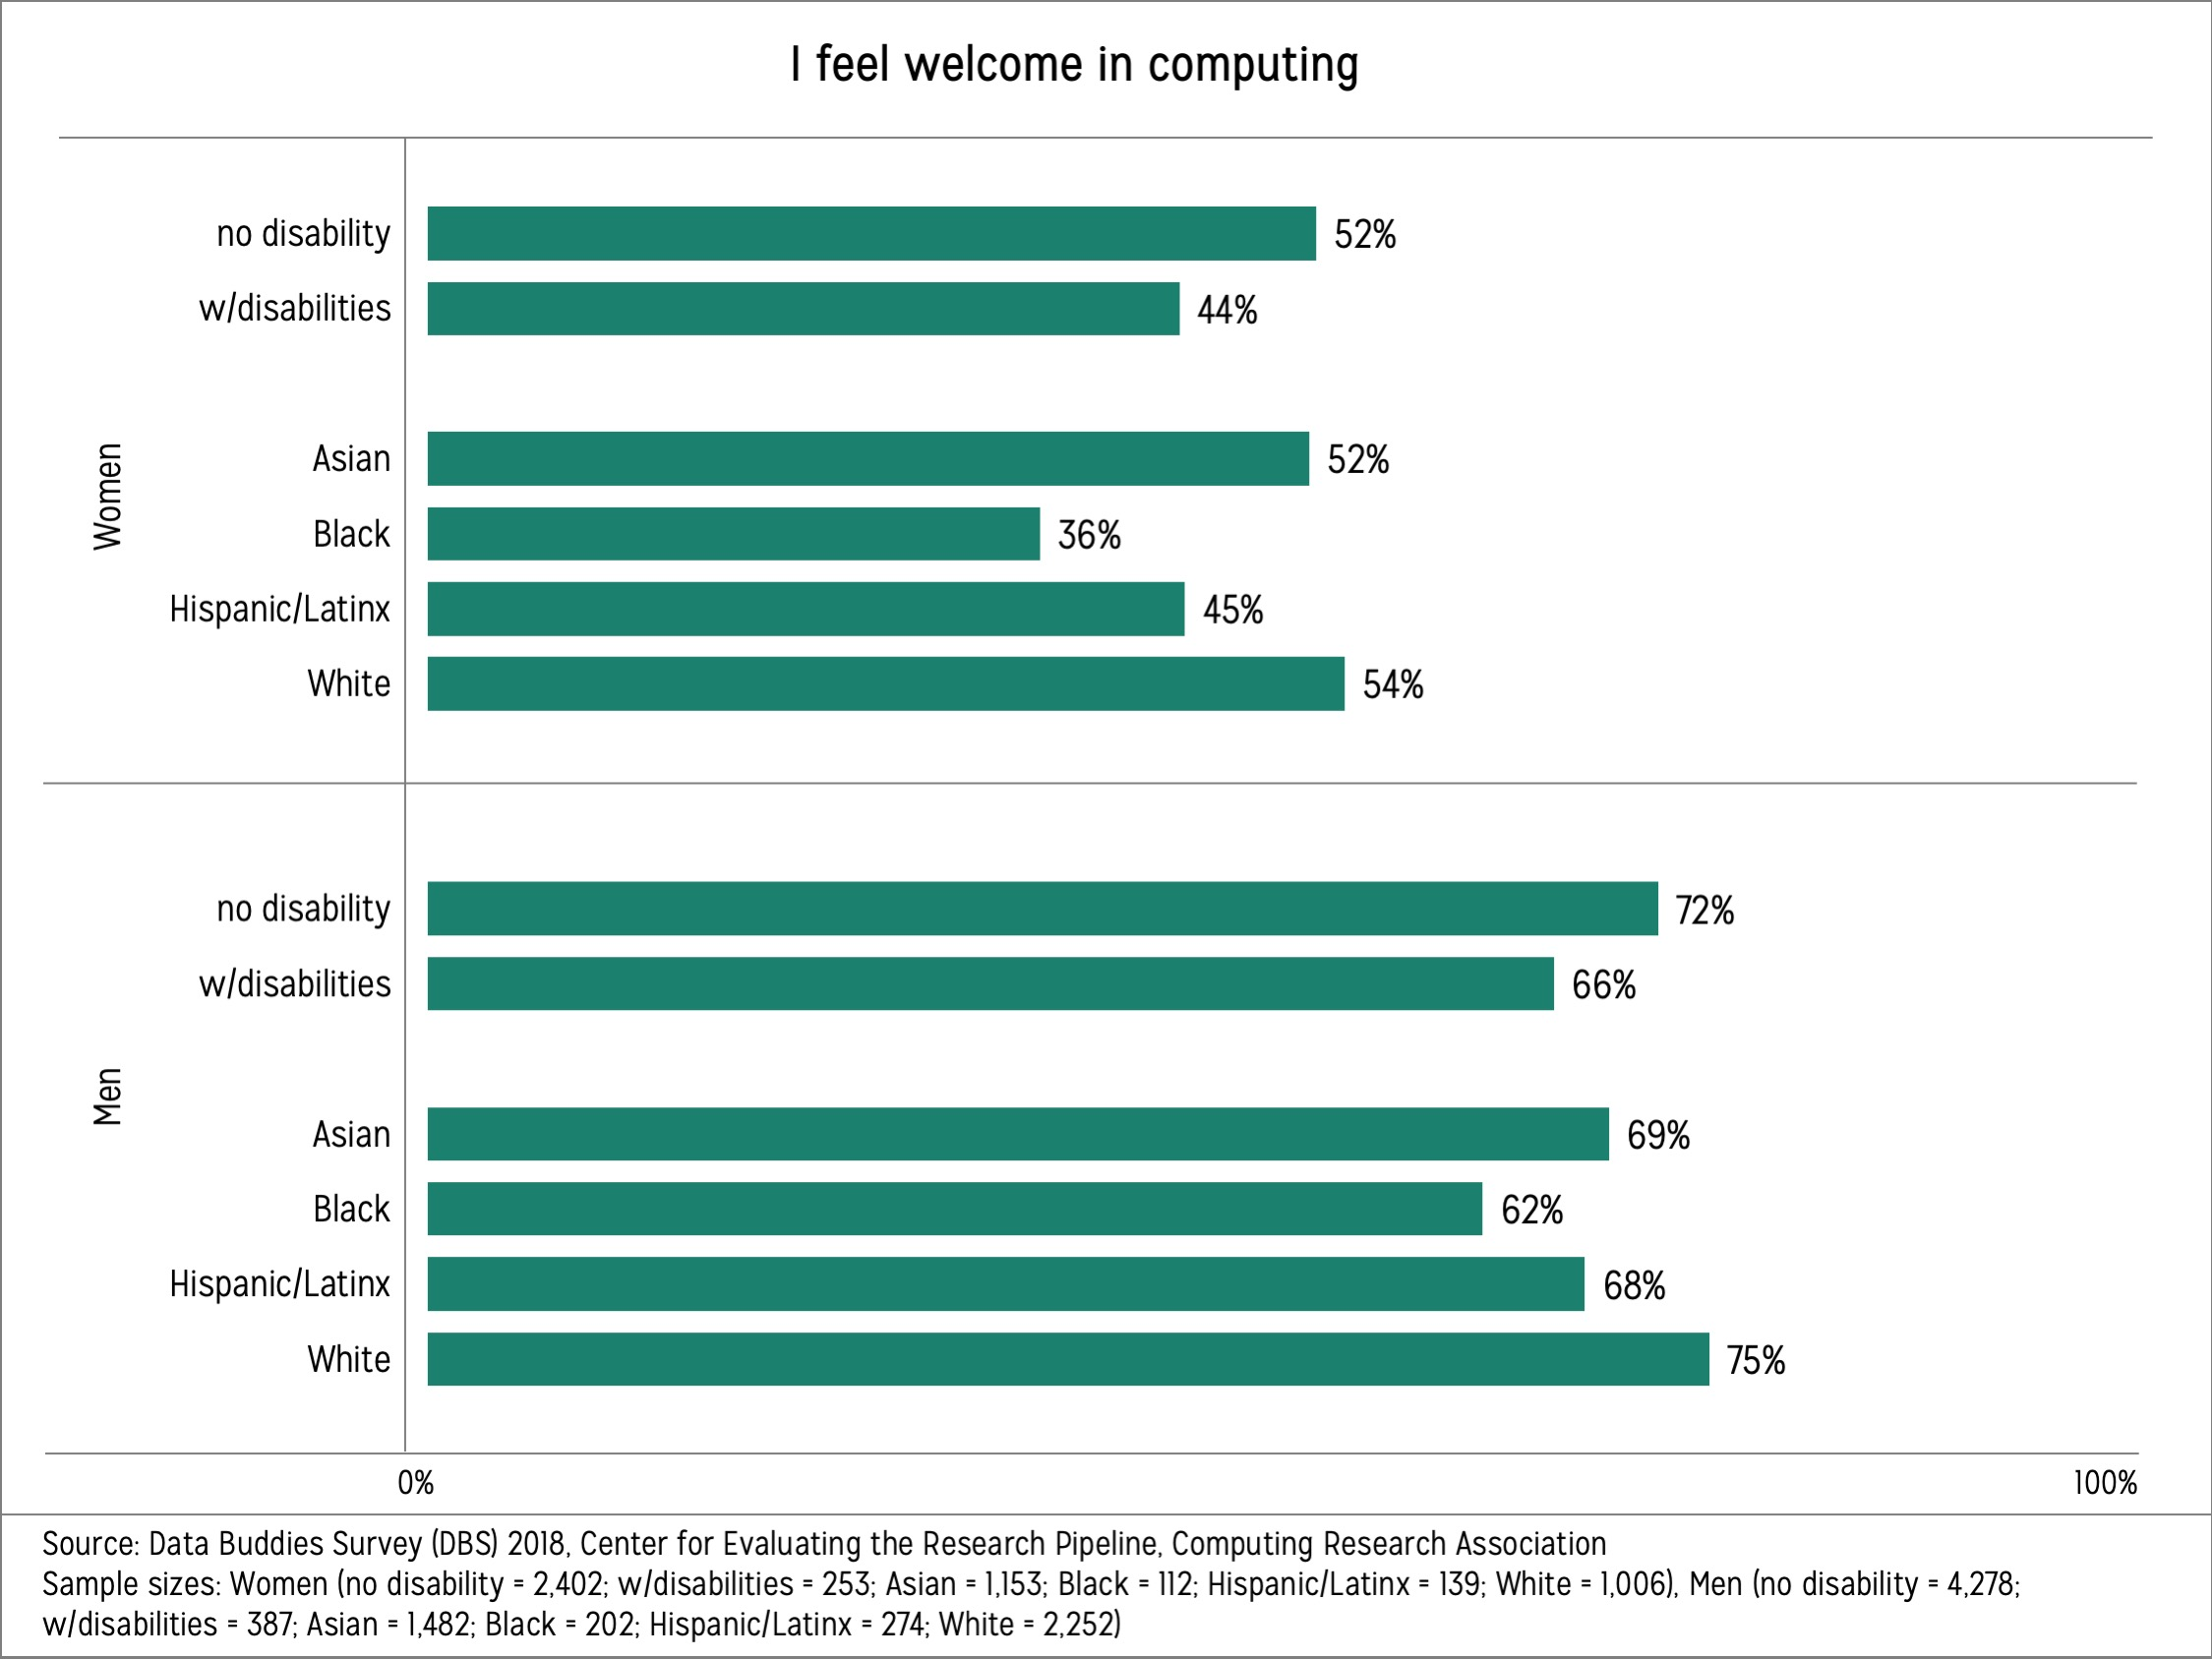 Horizontal bars showing percentages of undergraduate students' who reported feeling welcome in computing broken down by intersections of gender and race/ethnicity, and gender and disability status.